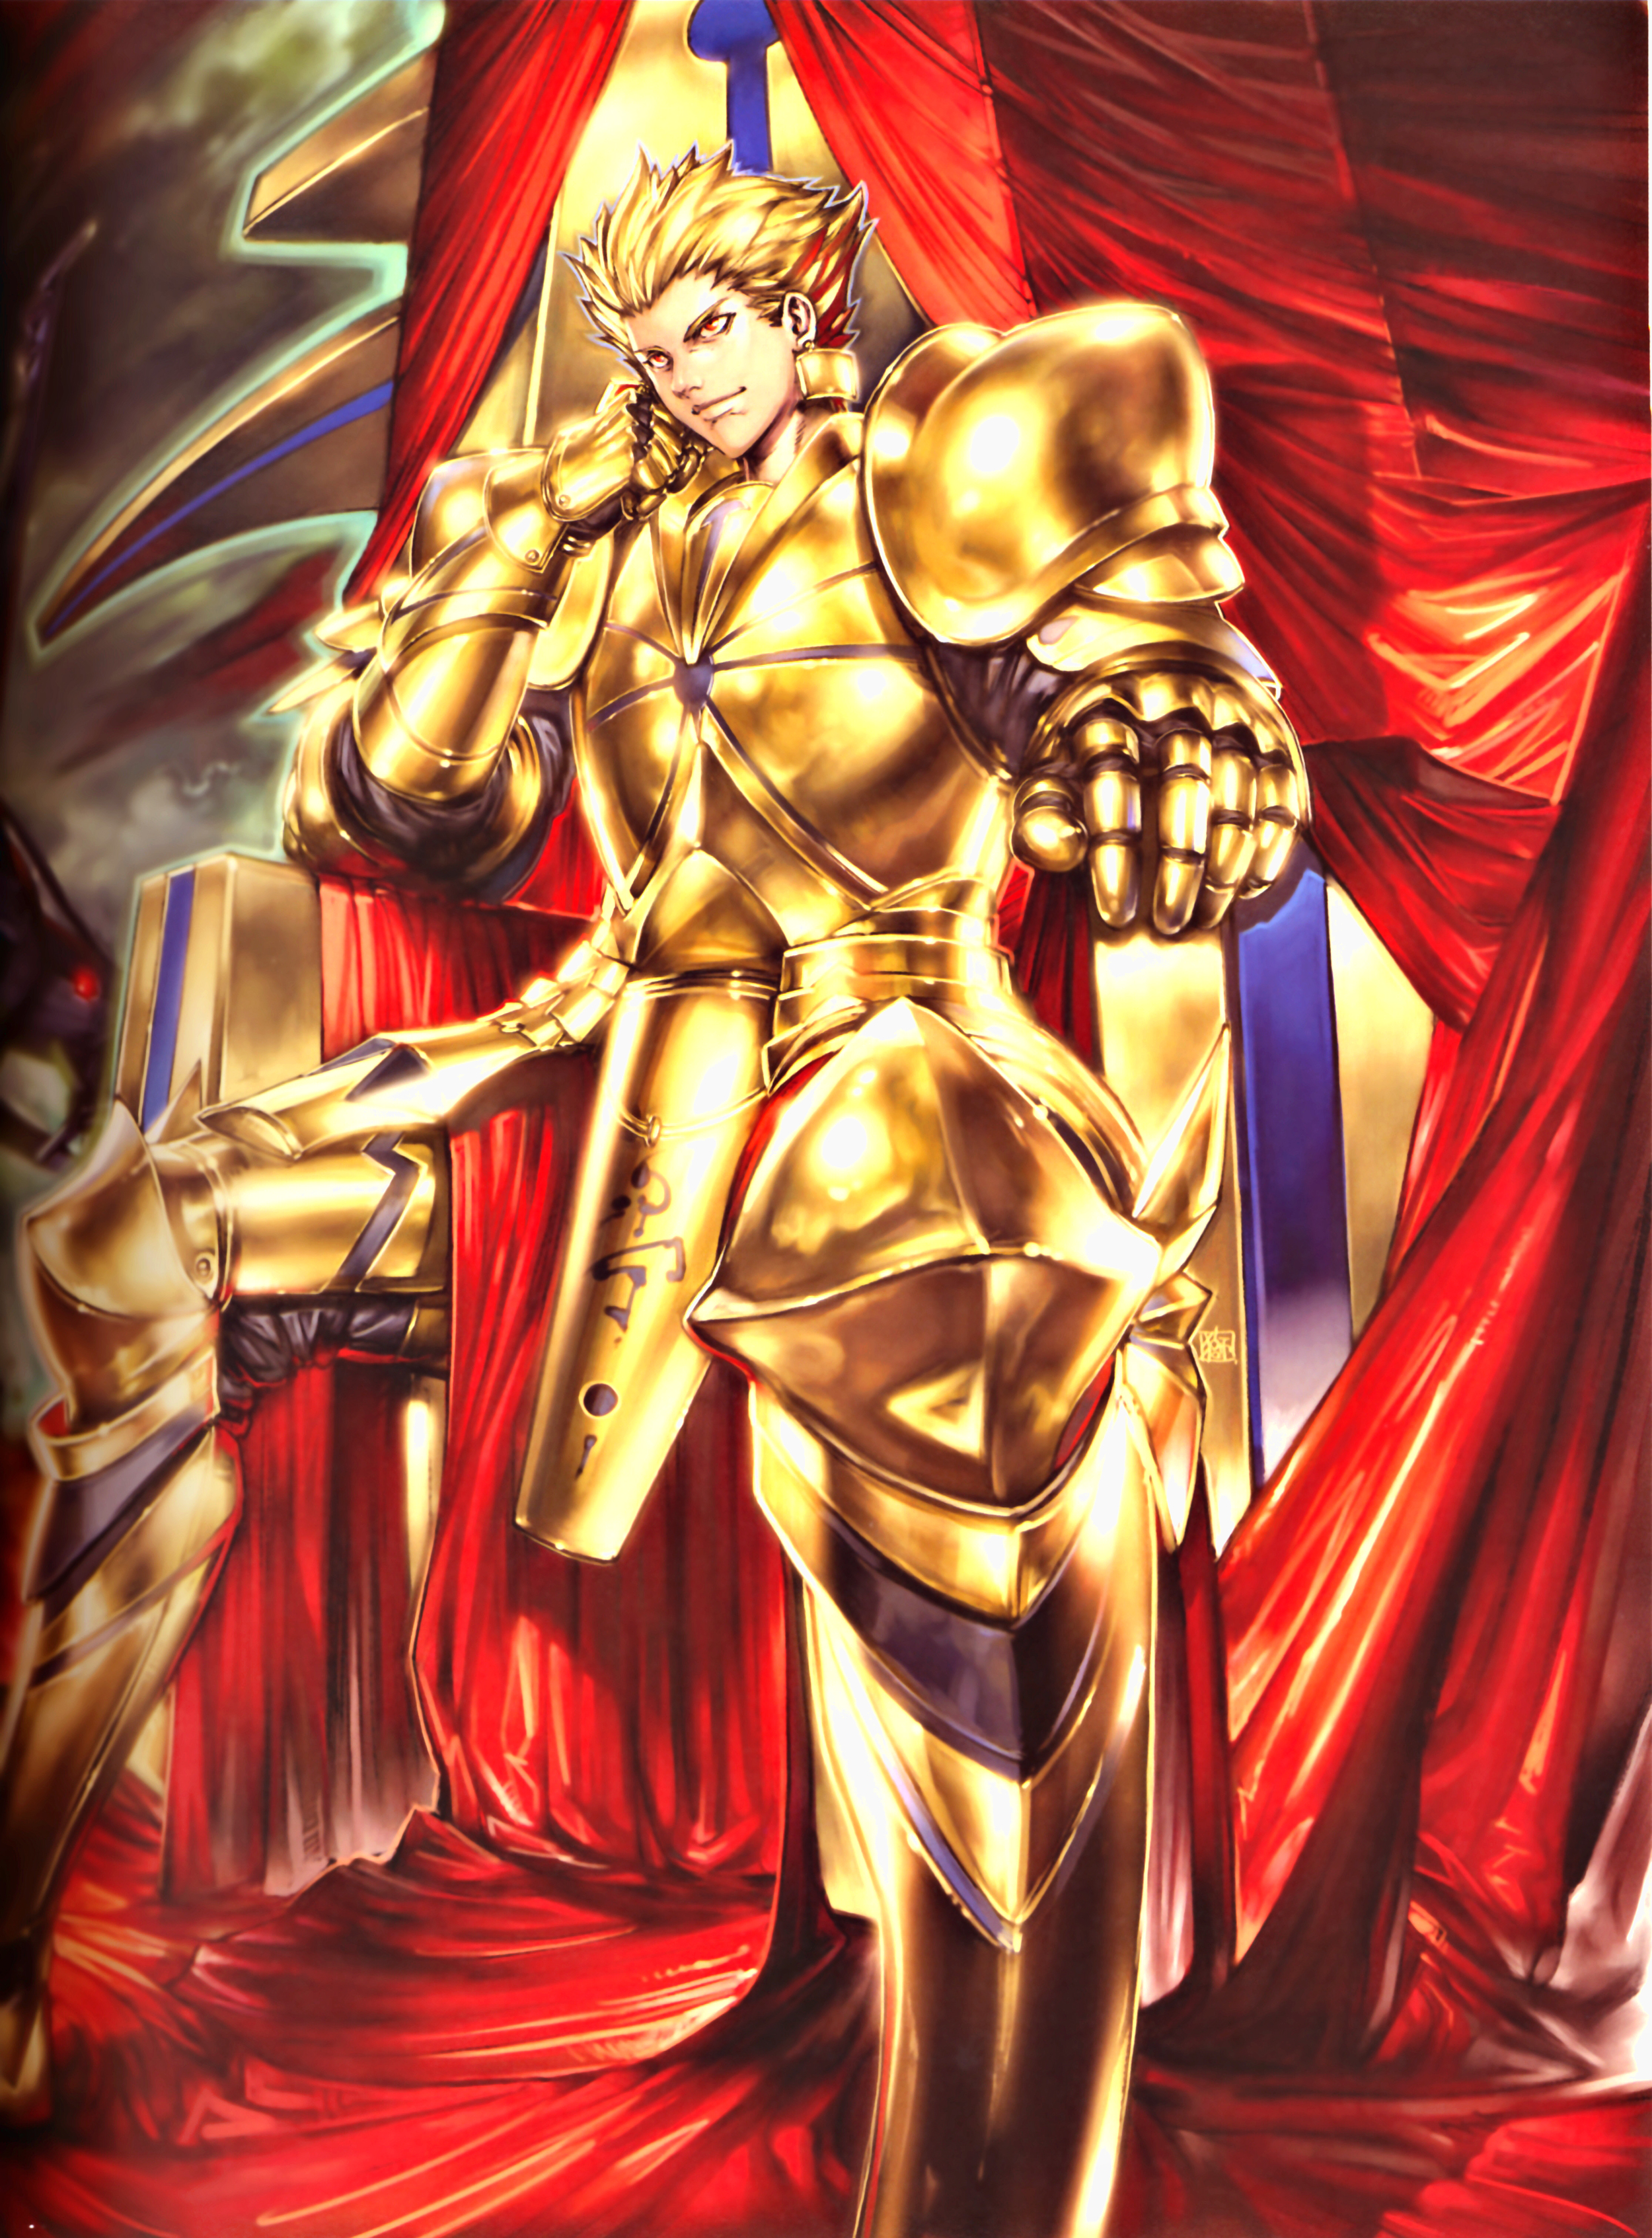 gilgameshs transformation In the actual fate route (after saber is summoned) we see gilgamesh in casual attire when he confronts saber and shirou before getting into his golden armour however, in unlimited blade works and.